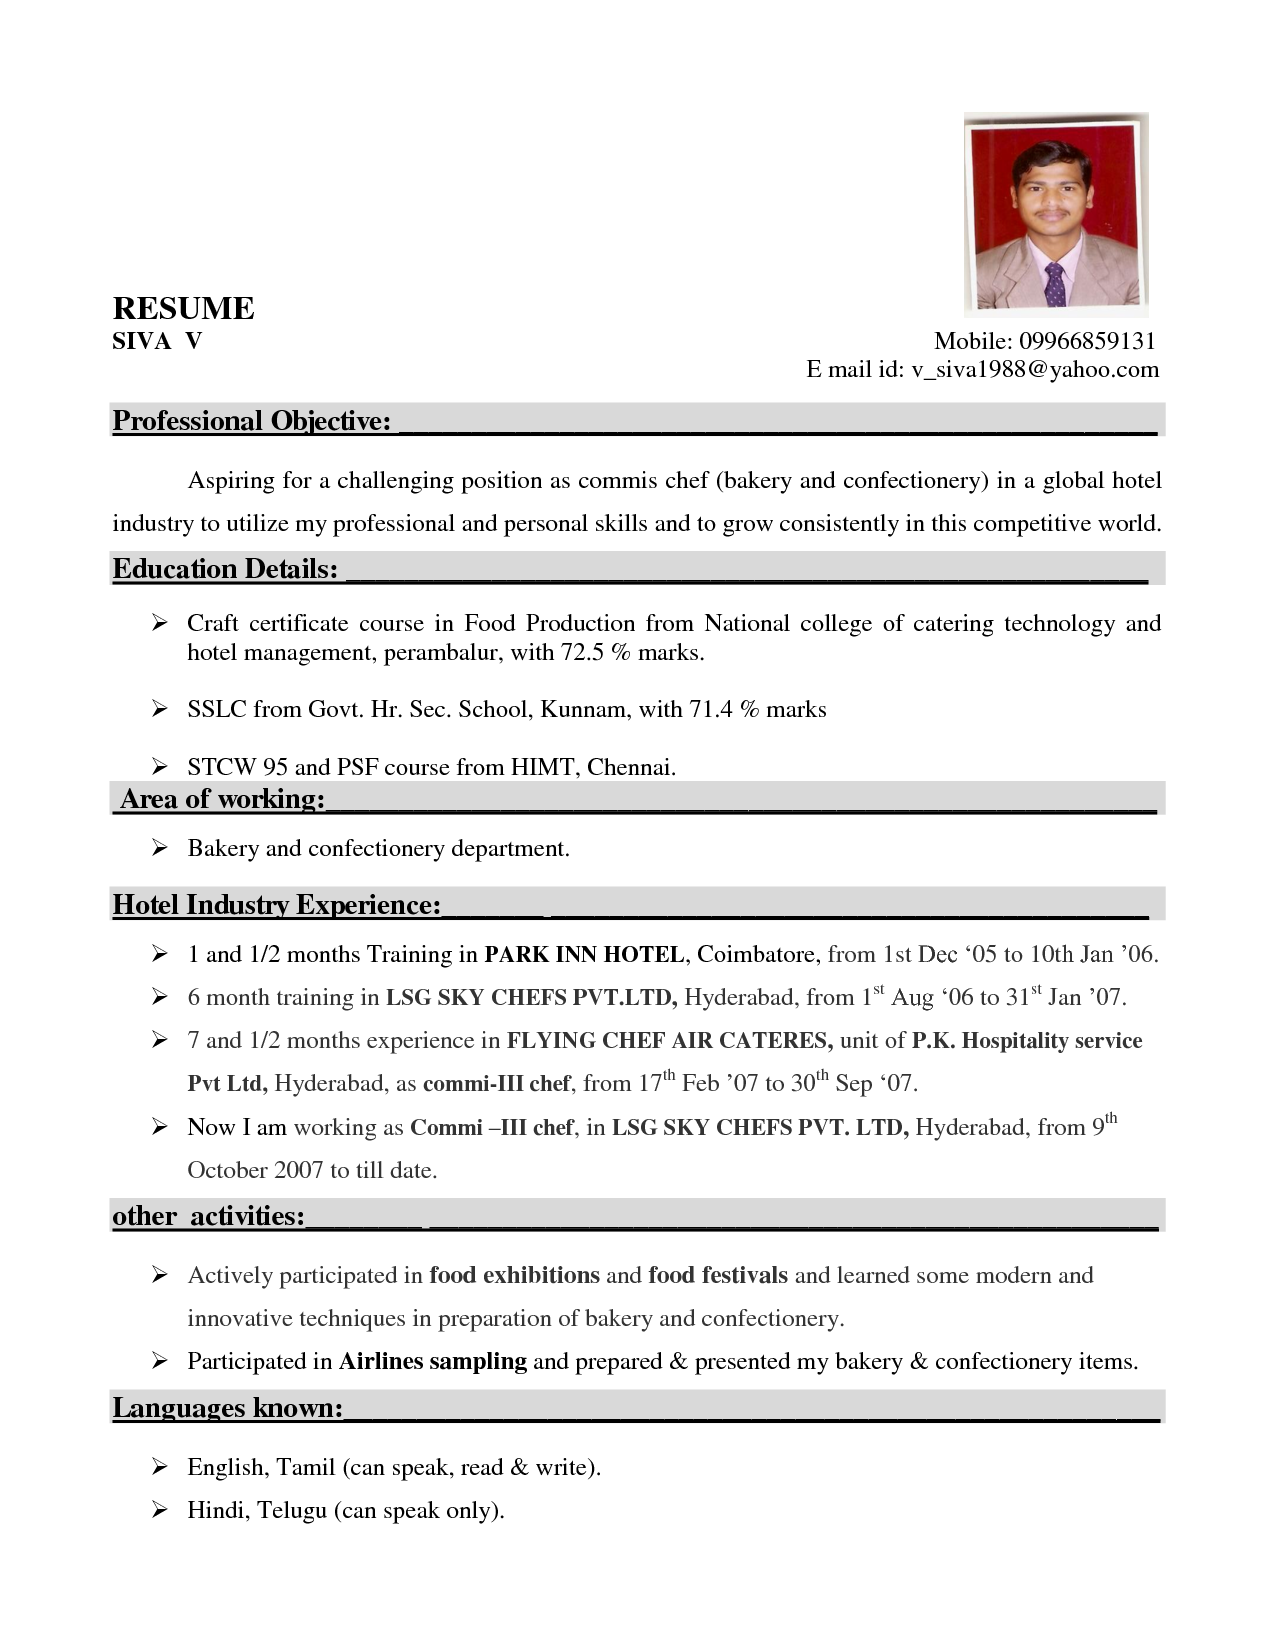 resume sample for hotel chef -